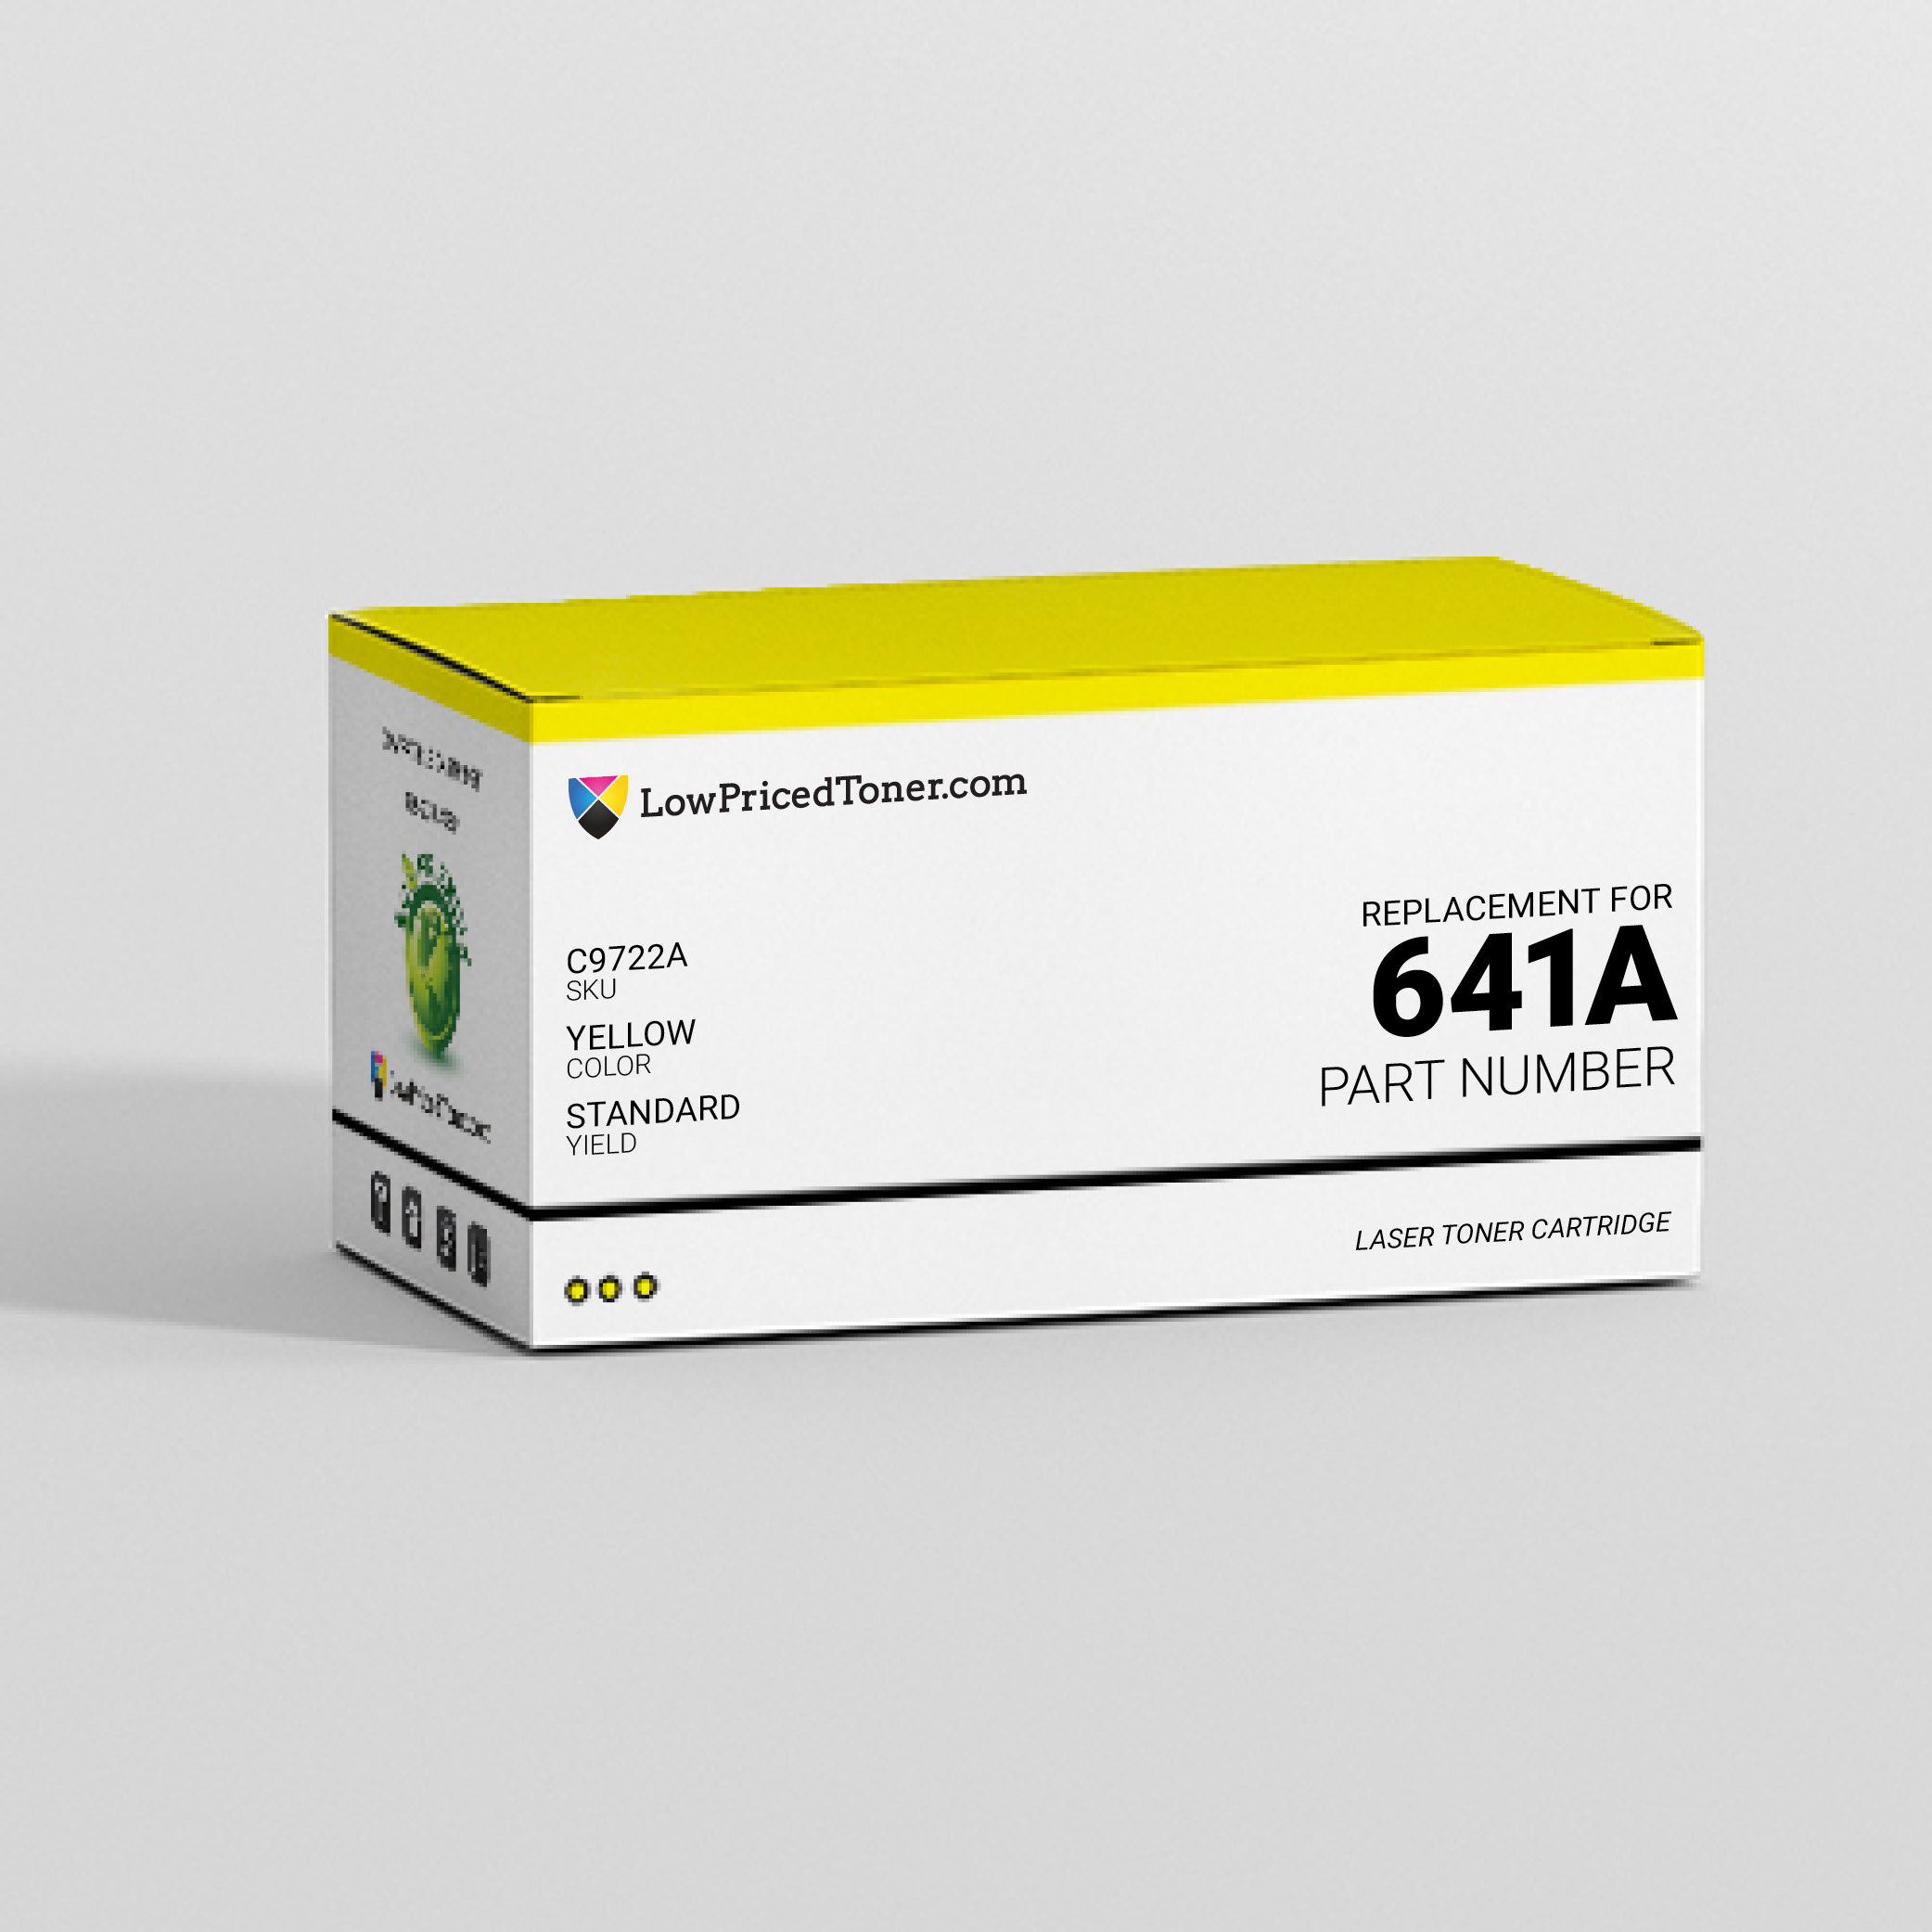 HP C9722A 641A Remanufactured Yellow Laser Toner Cartridge